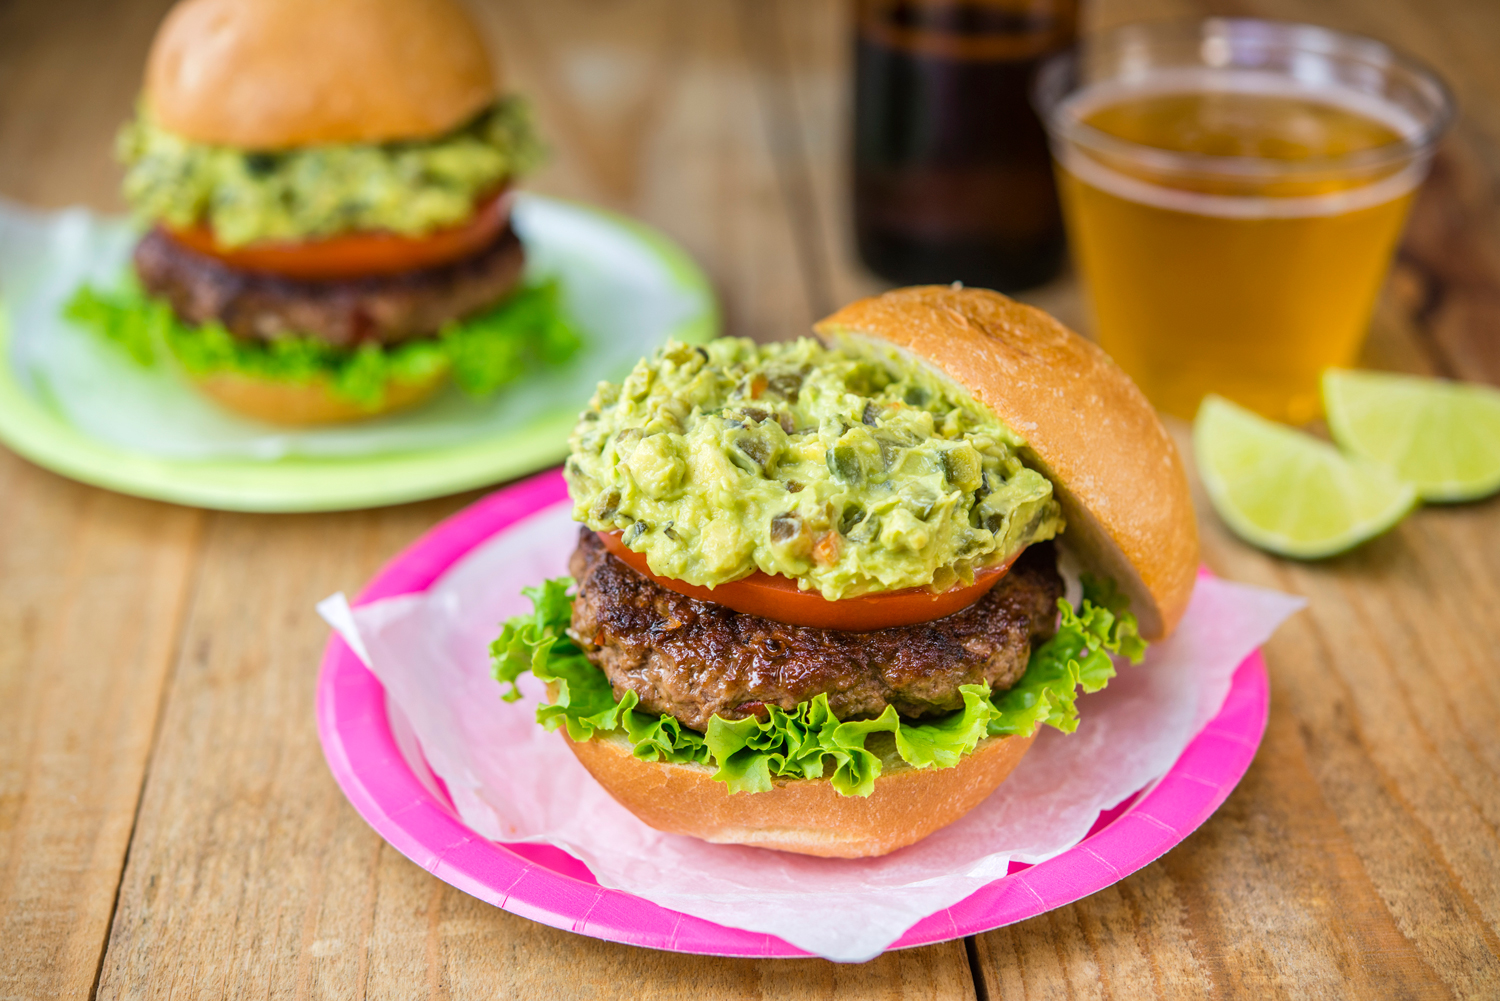 Chipotle Avocado Burger with Chile Poblano